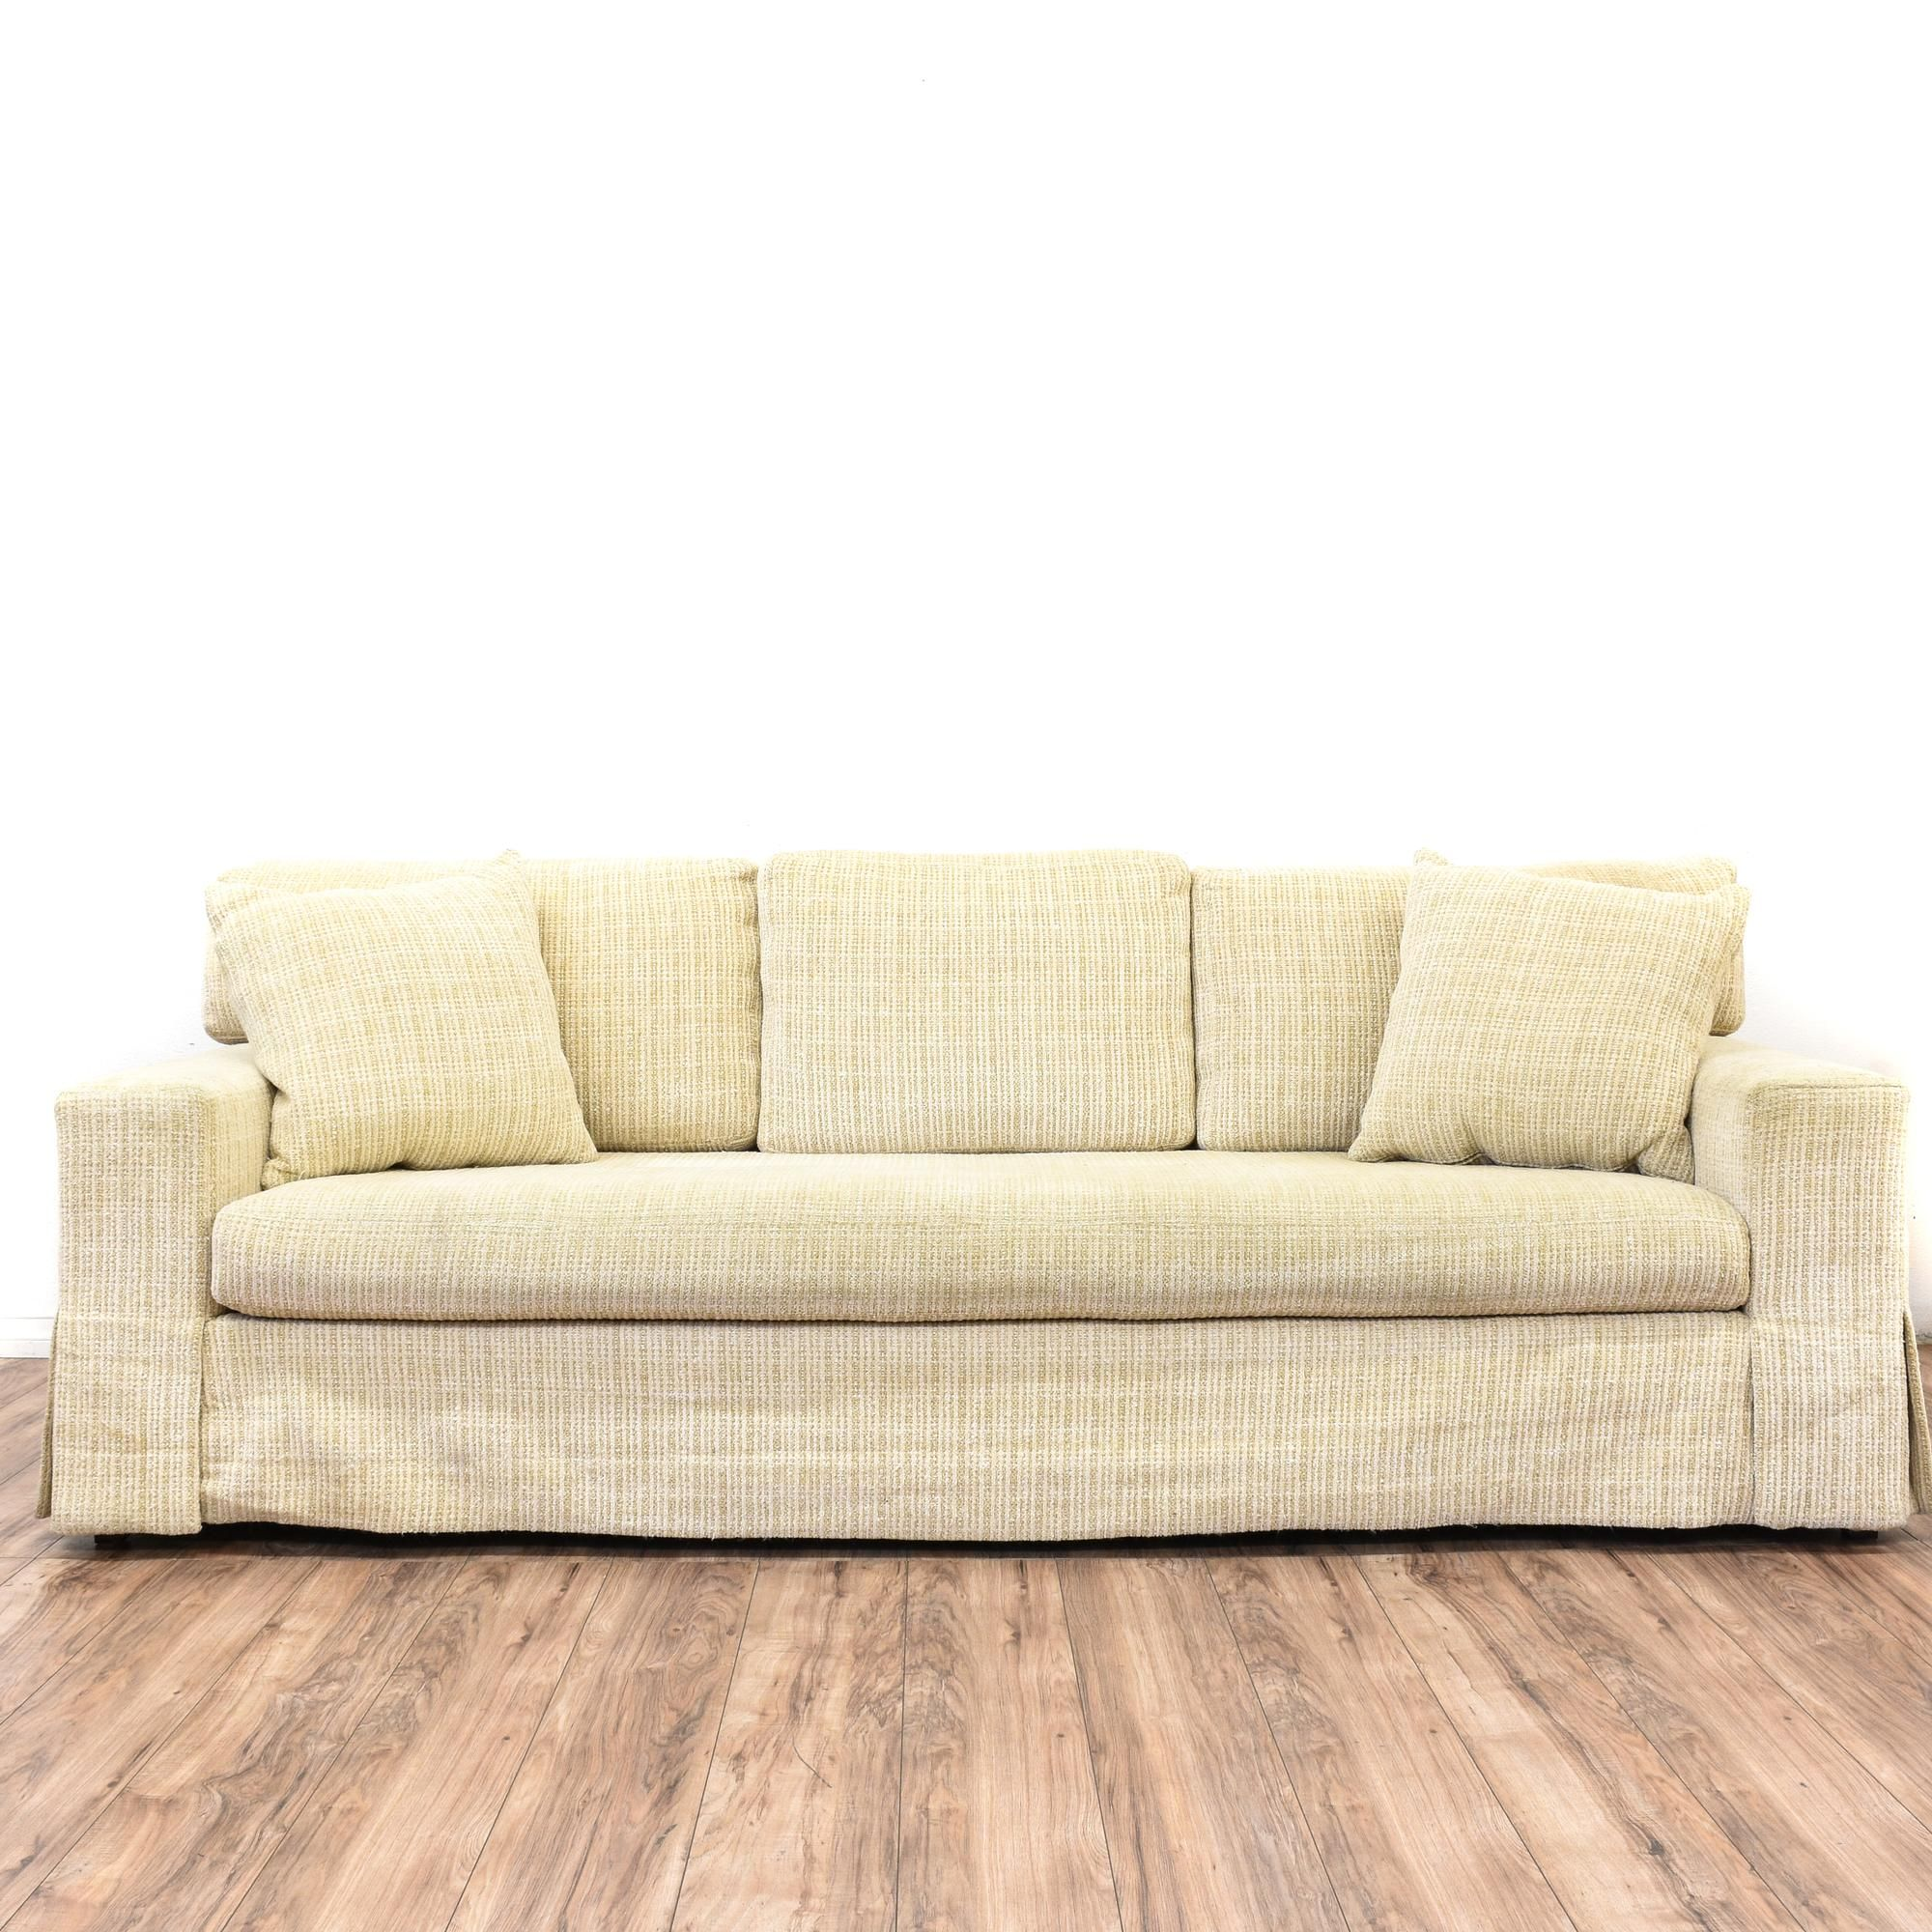 Contemporary Beige Microfiber Sofa | Contemporary sofa, Plush and ...